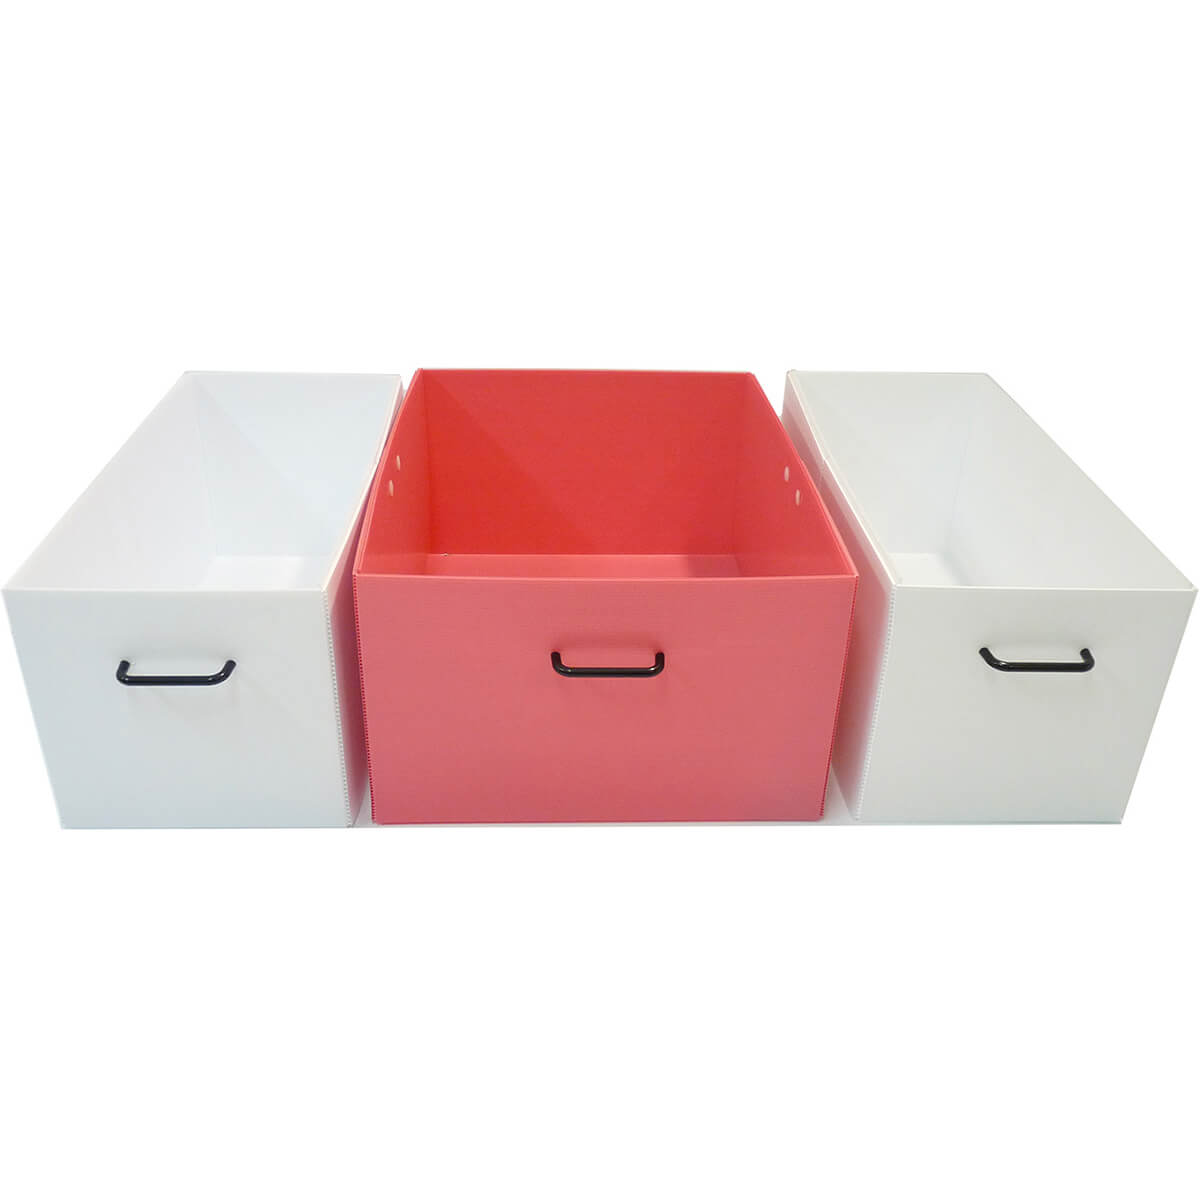 Bins for Medium Cage - pink and white